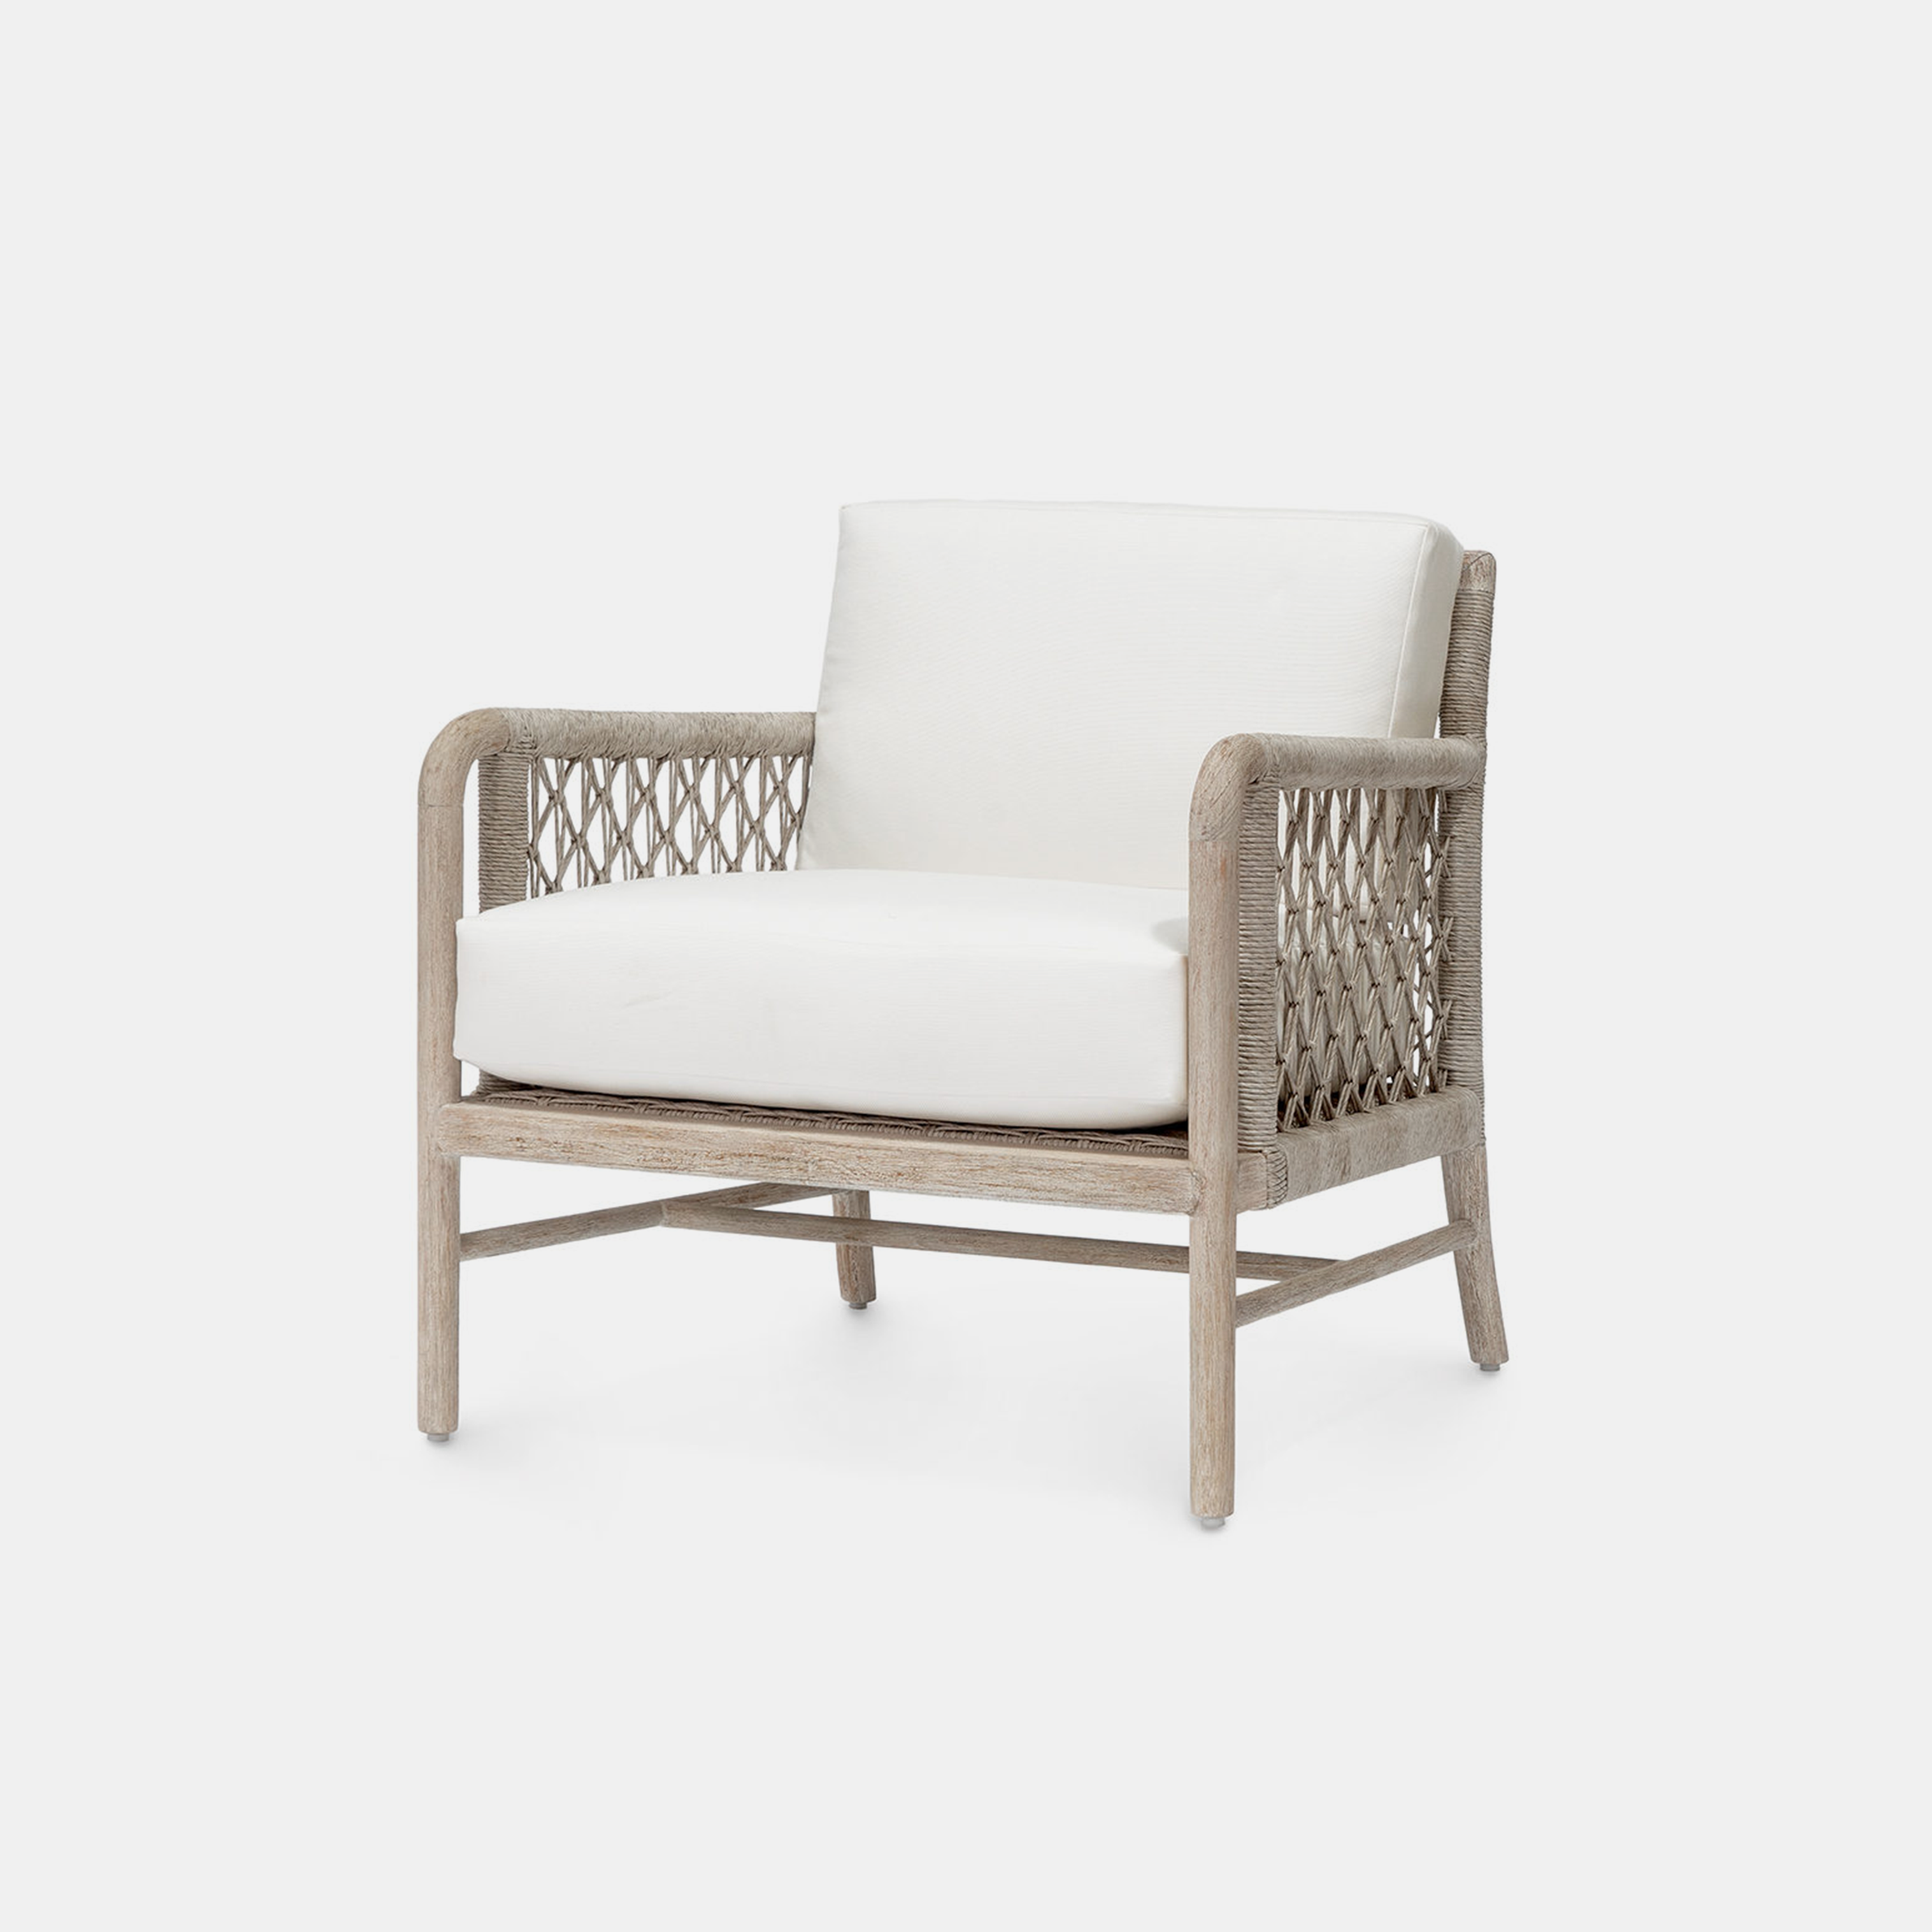 "Montecito Lounge Chair  30.5""w x 32.25""d x 31.25""h Also available as side chair, arm chair, sofa, counter stool, and bar stool. SKU13409PLK"